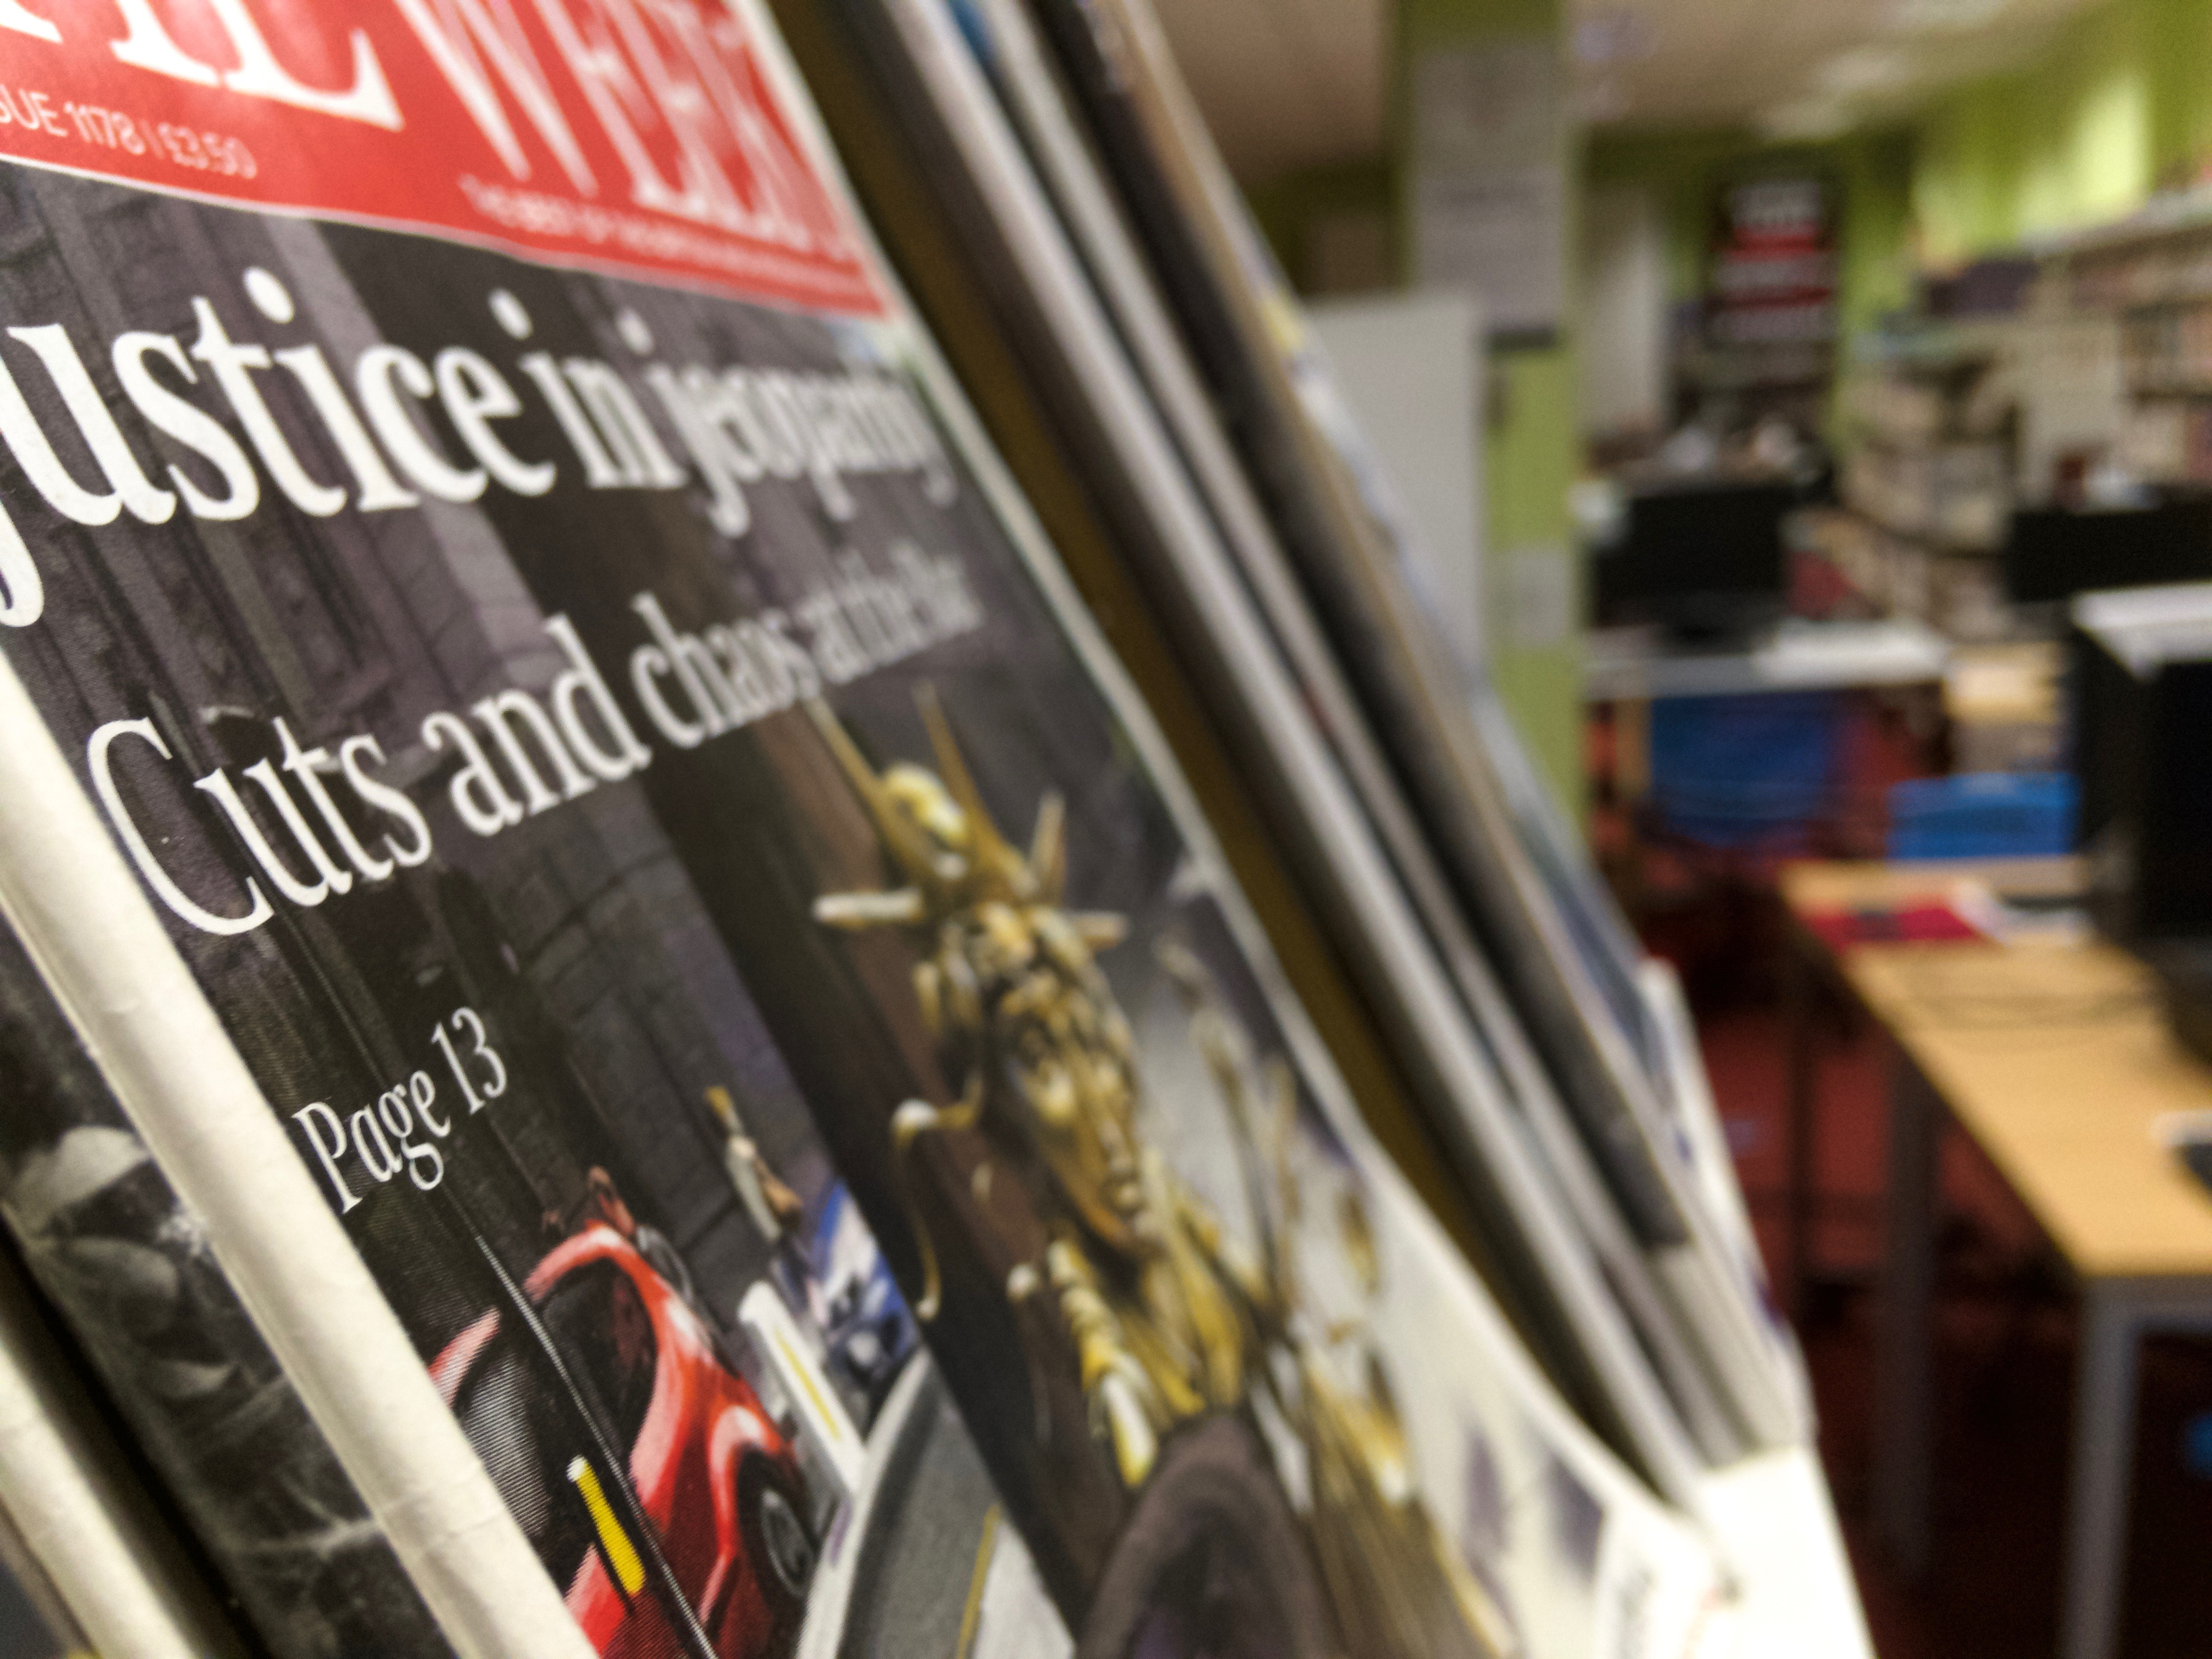 Close-up of magazine in a library shows front-page about government cuts